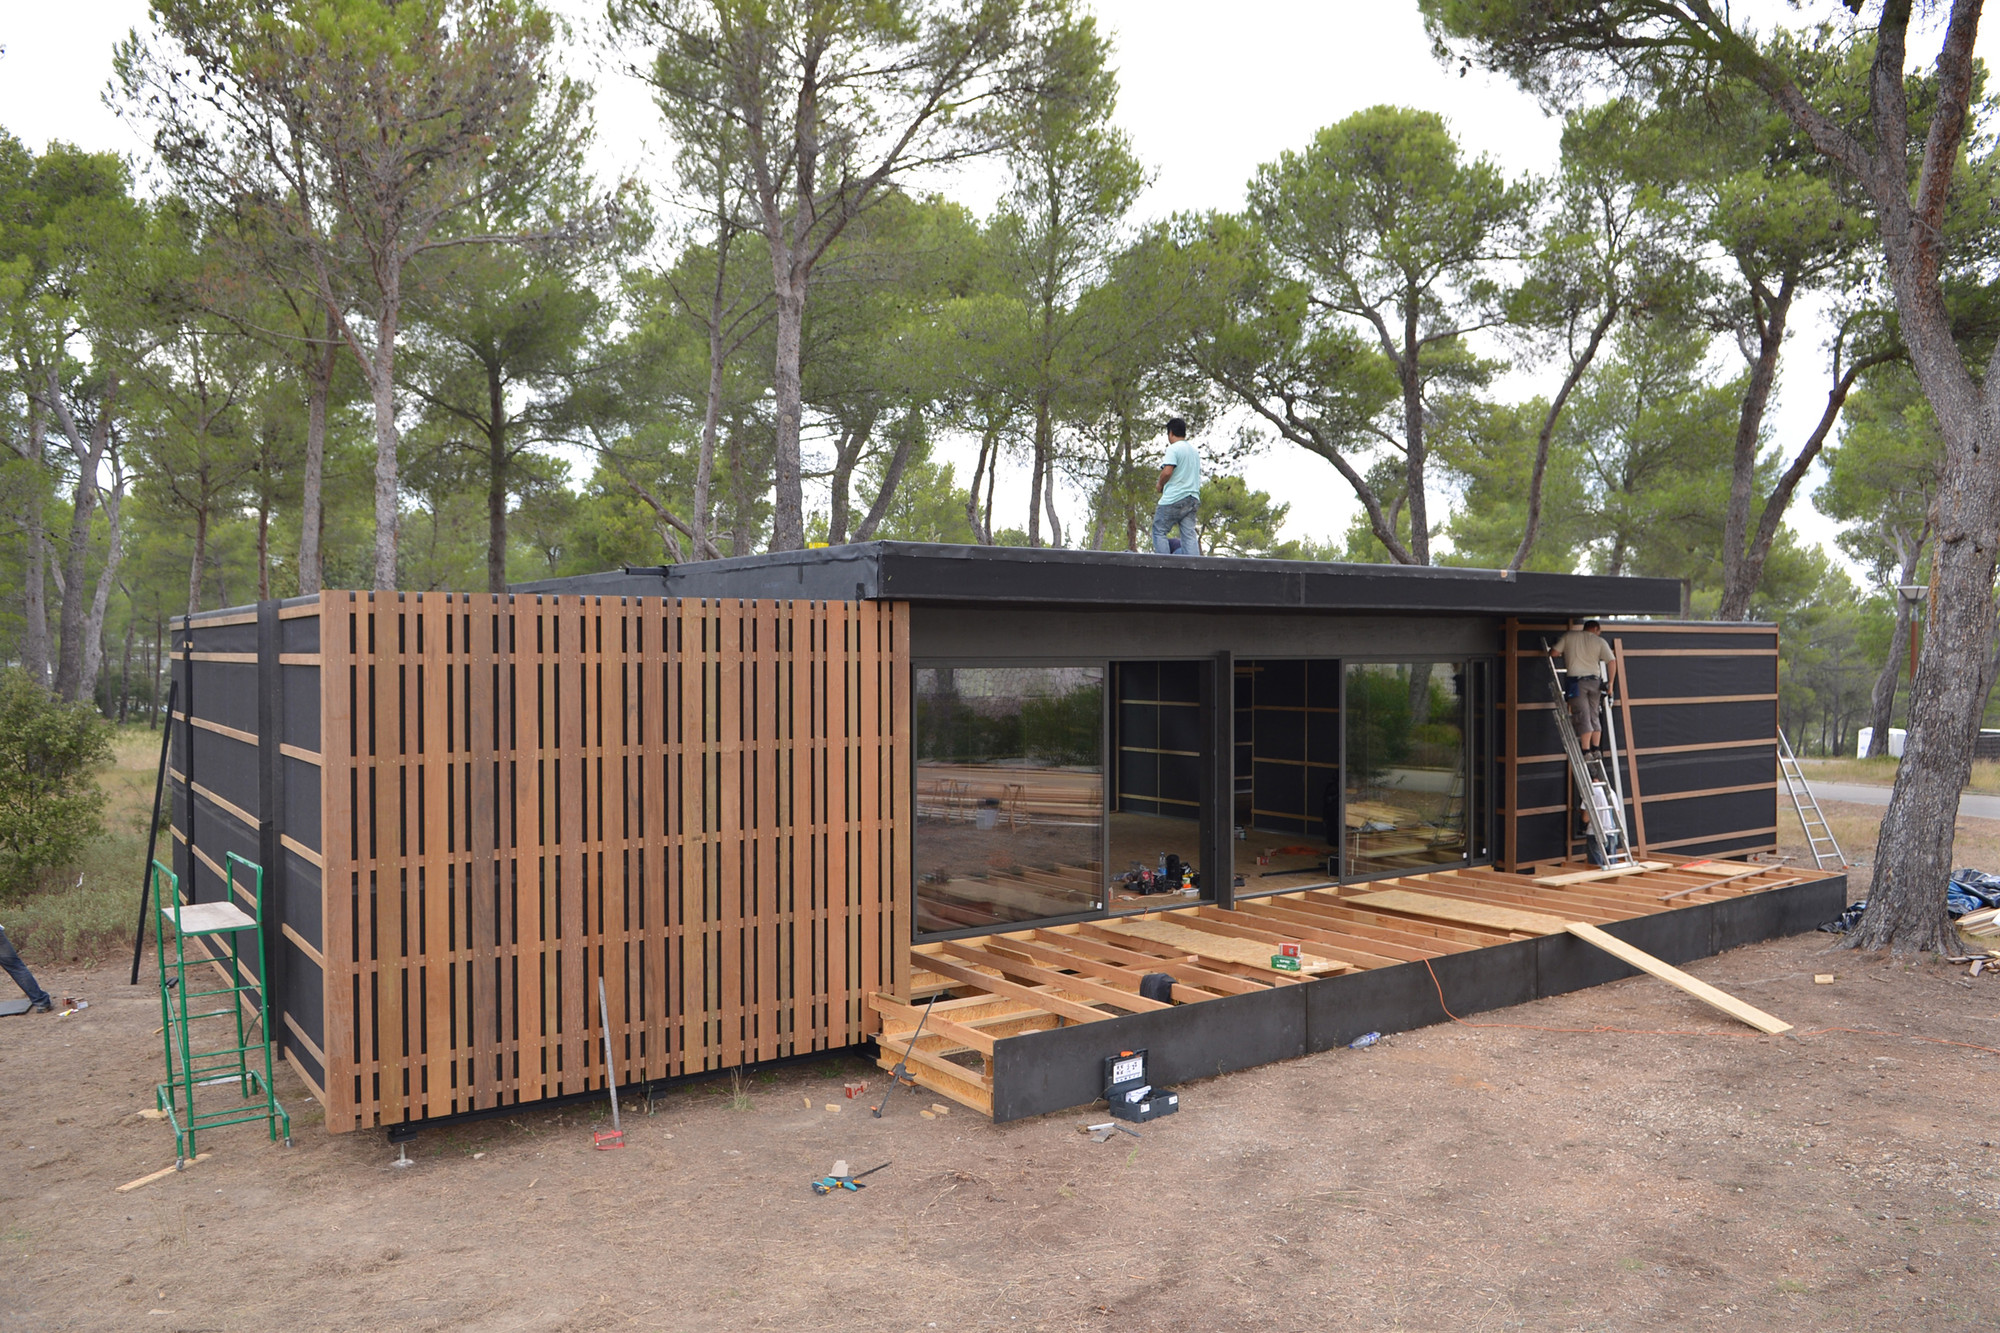 Container Haus Galileo Galeria De Casa Pop Up Multipod Studio 12